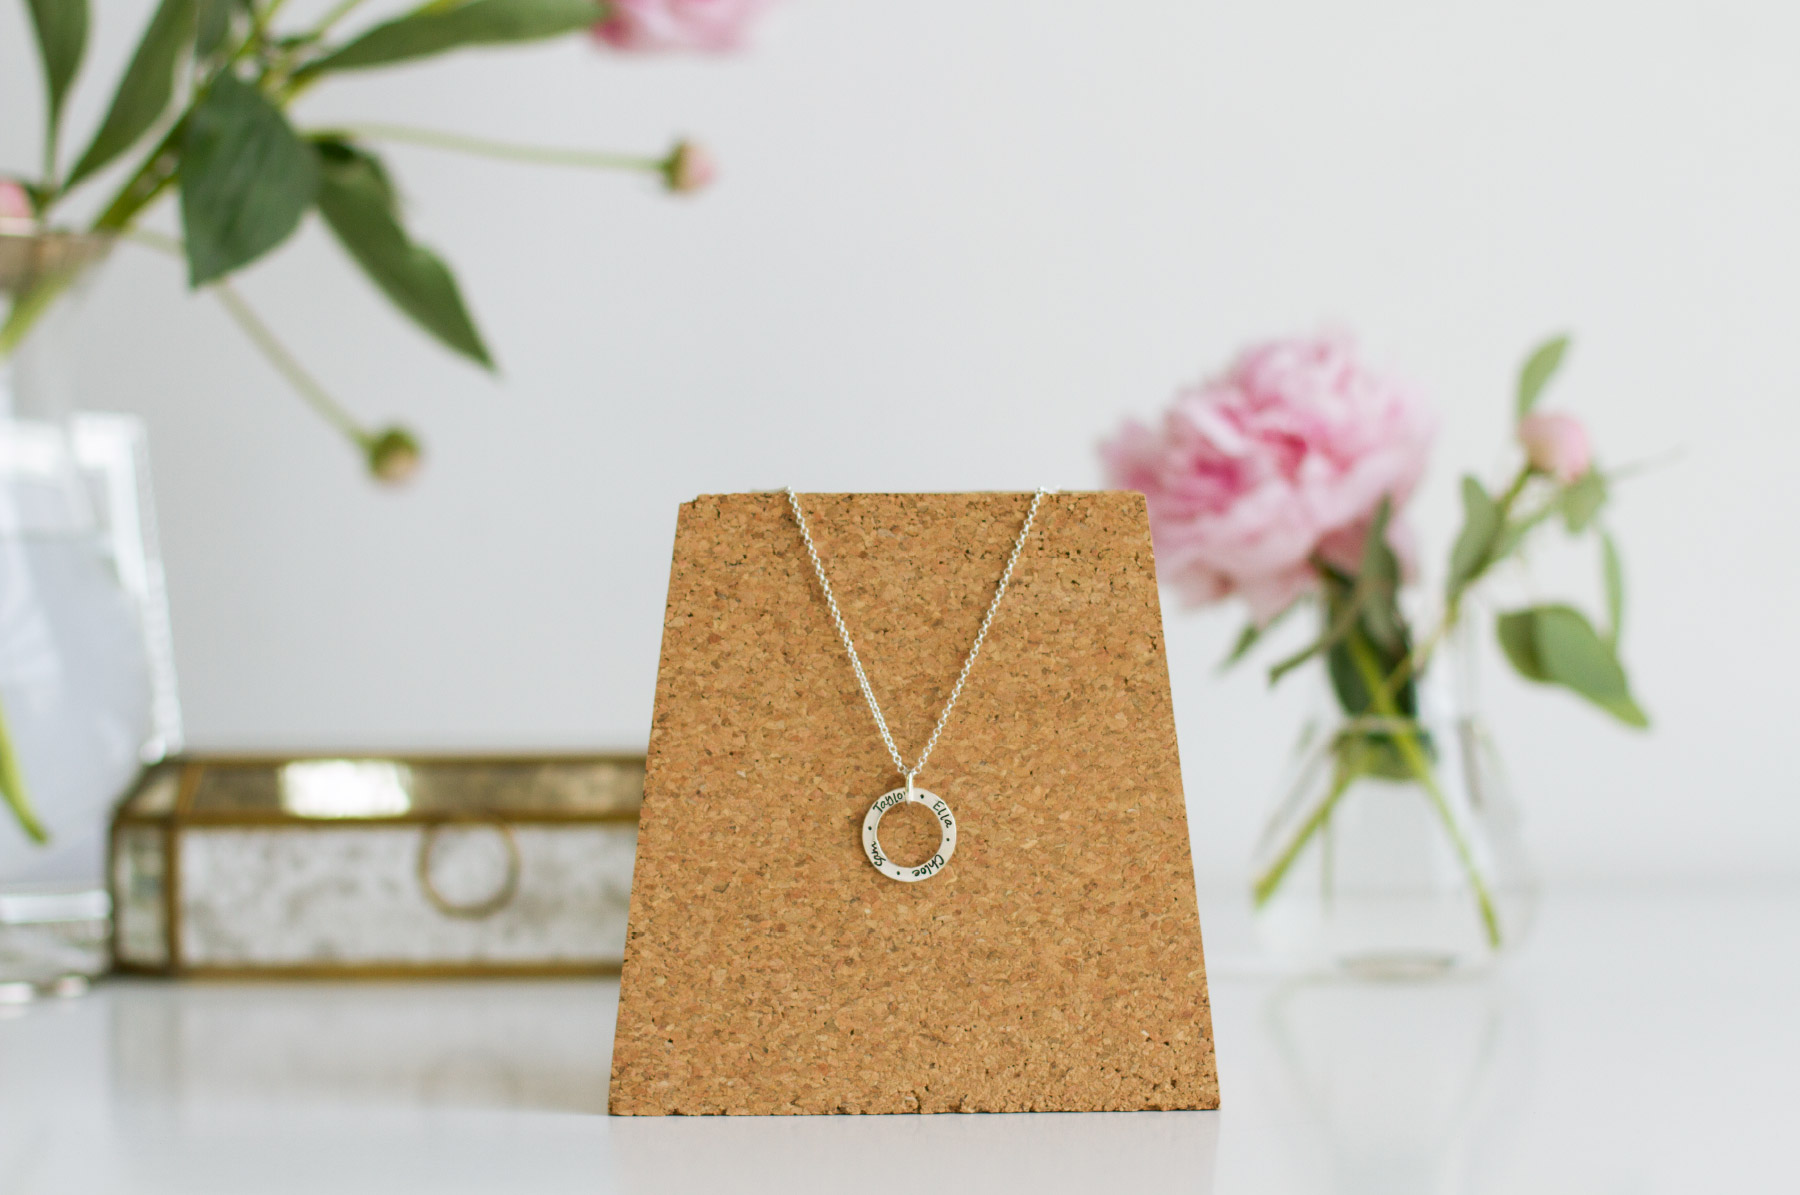 Fuze-Branding-Mommy-Jewelry-Customized-Jewerly-For-Mothers-Engraved-Pendant-Necklace-For-Mommies-Product-Photography